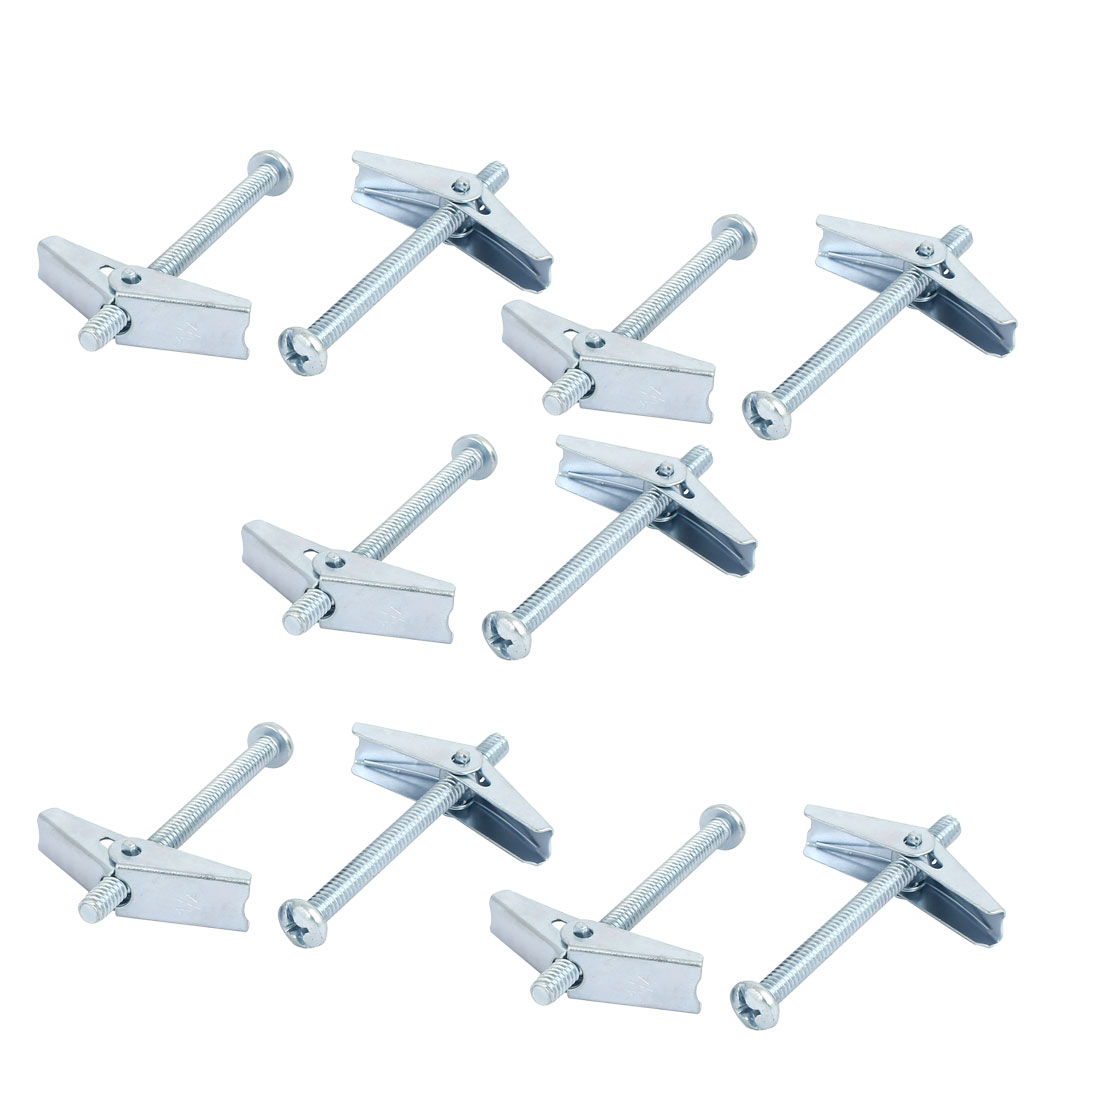 "1/4"" x 3"" Male Thread Spring Loaded Hollow Wall Round Head Toggle Bolt 10pcs"